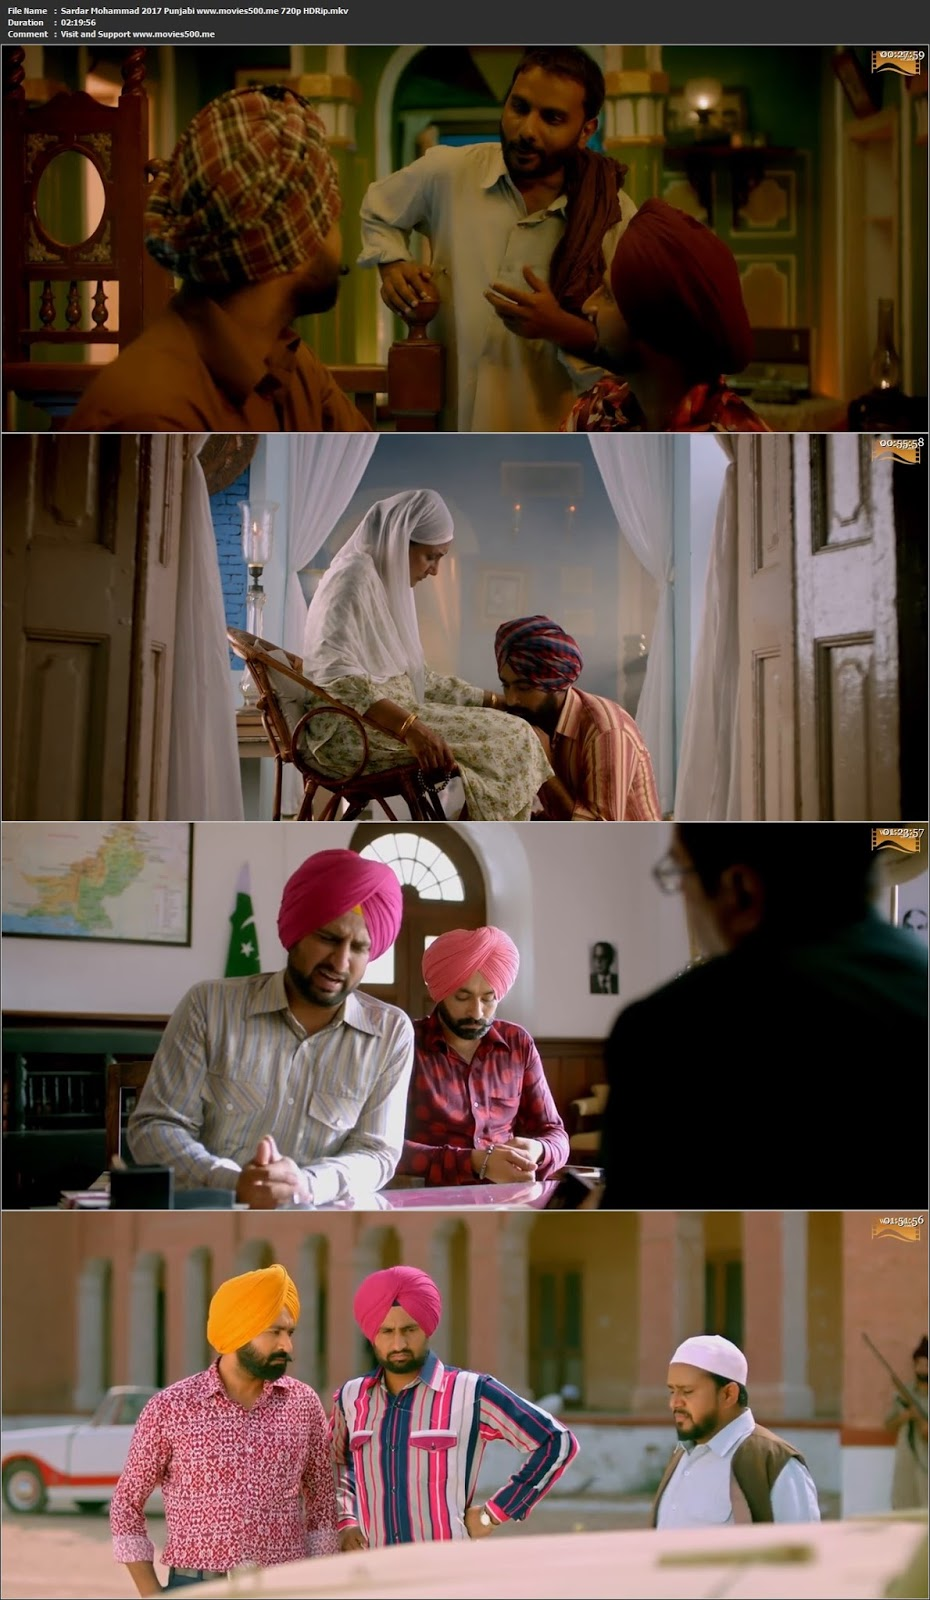 Sardar Mohammad 2017 Punjabi Full Movie HDRip 720p at movies500.xyz